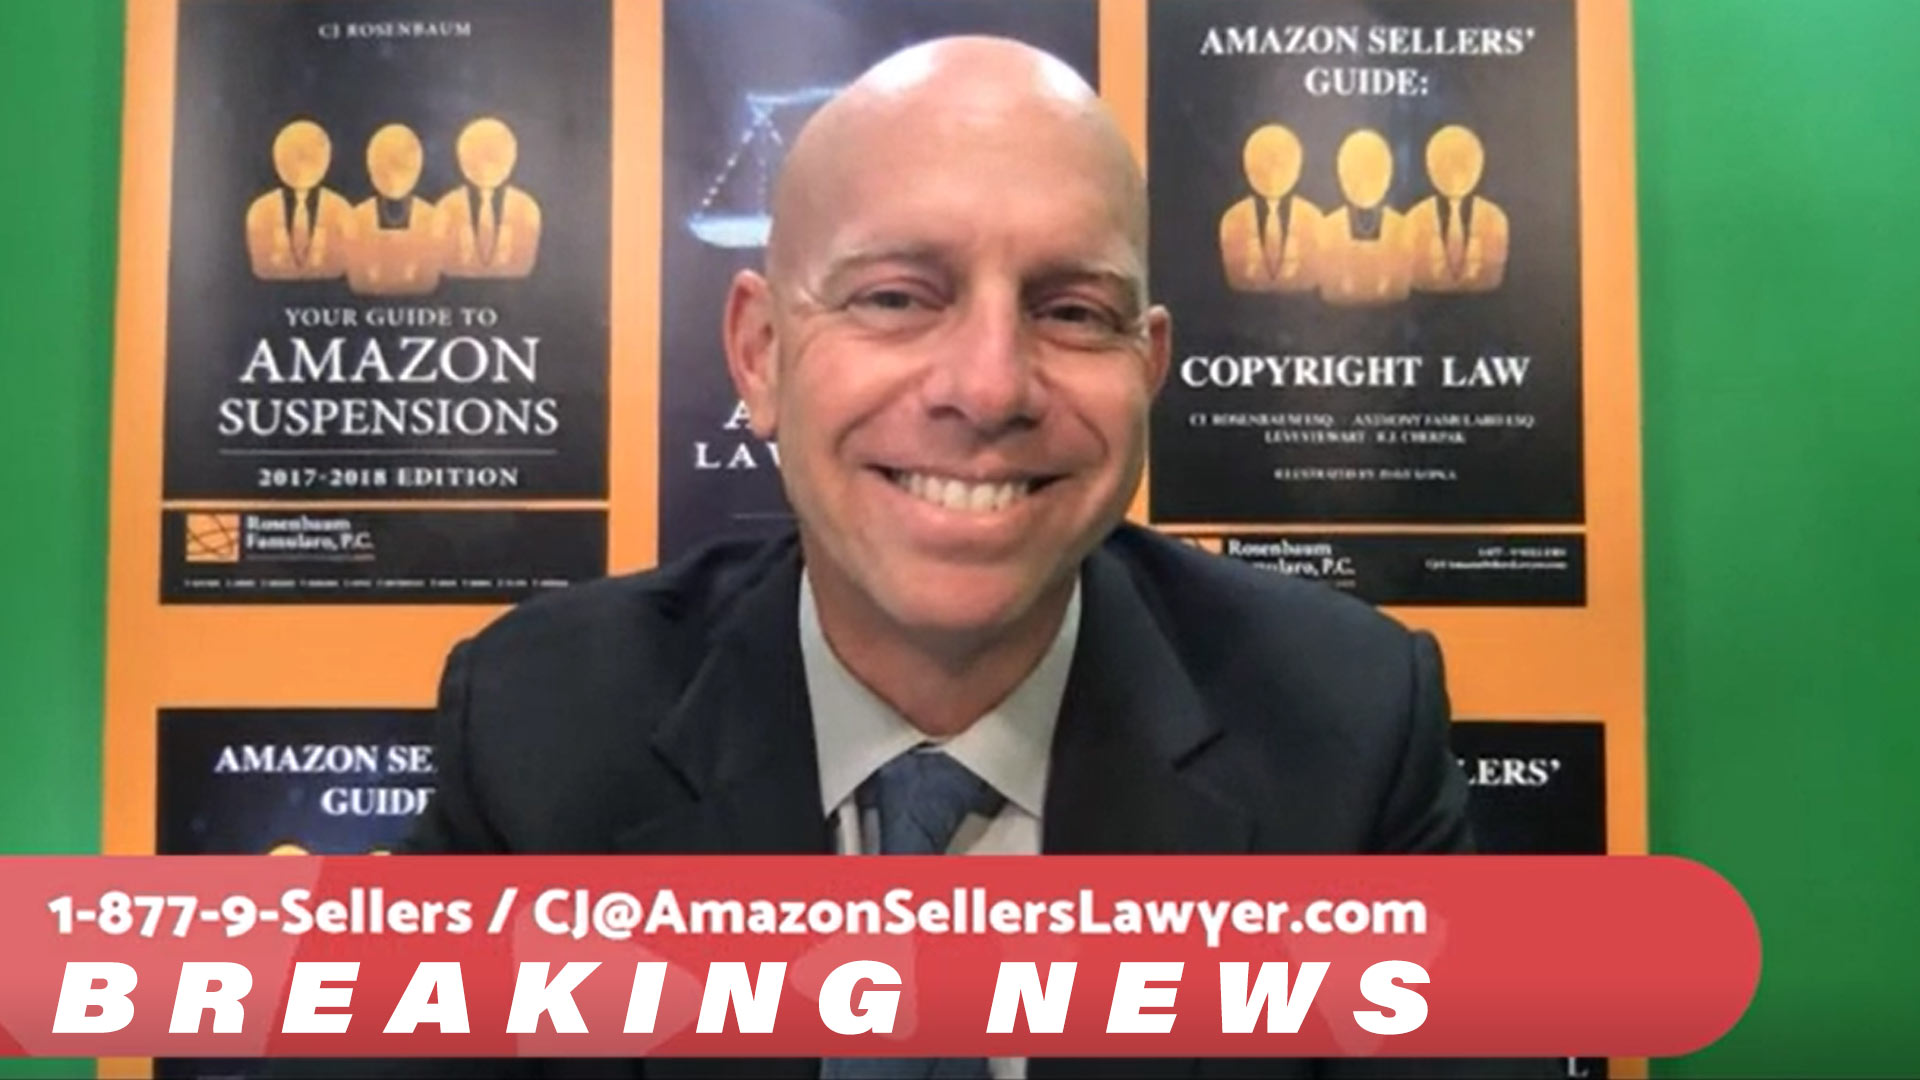 Amazon sellers breaking news